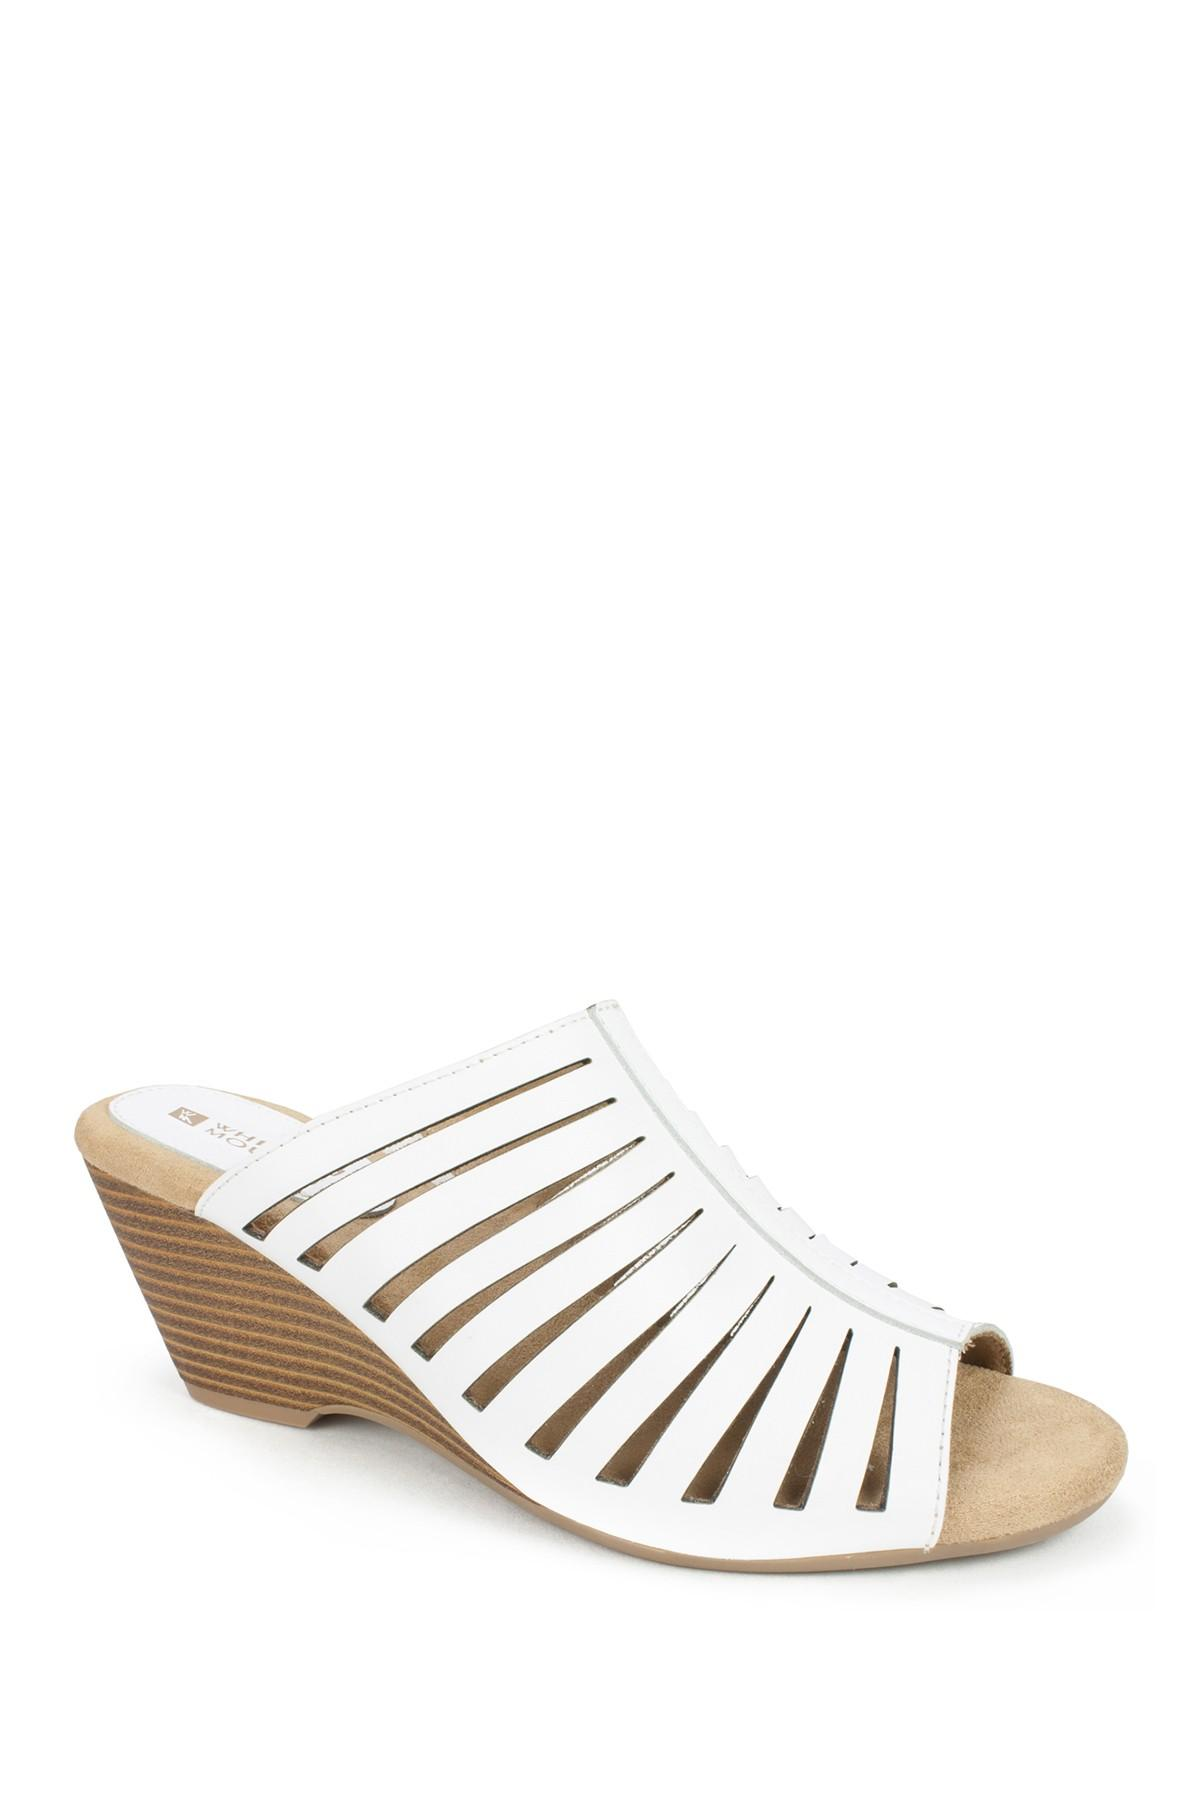 682f165f0 Lyst - White Mountain Footwear Pisces Caged Wedge Mule in White